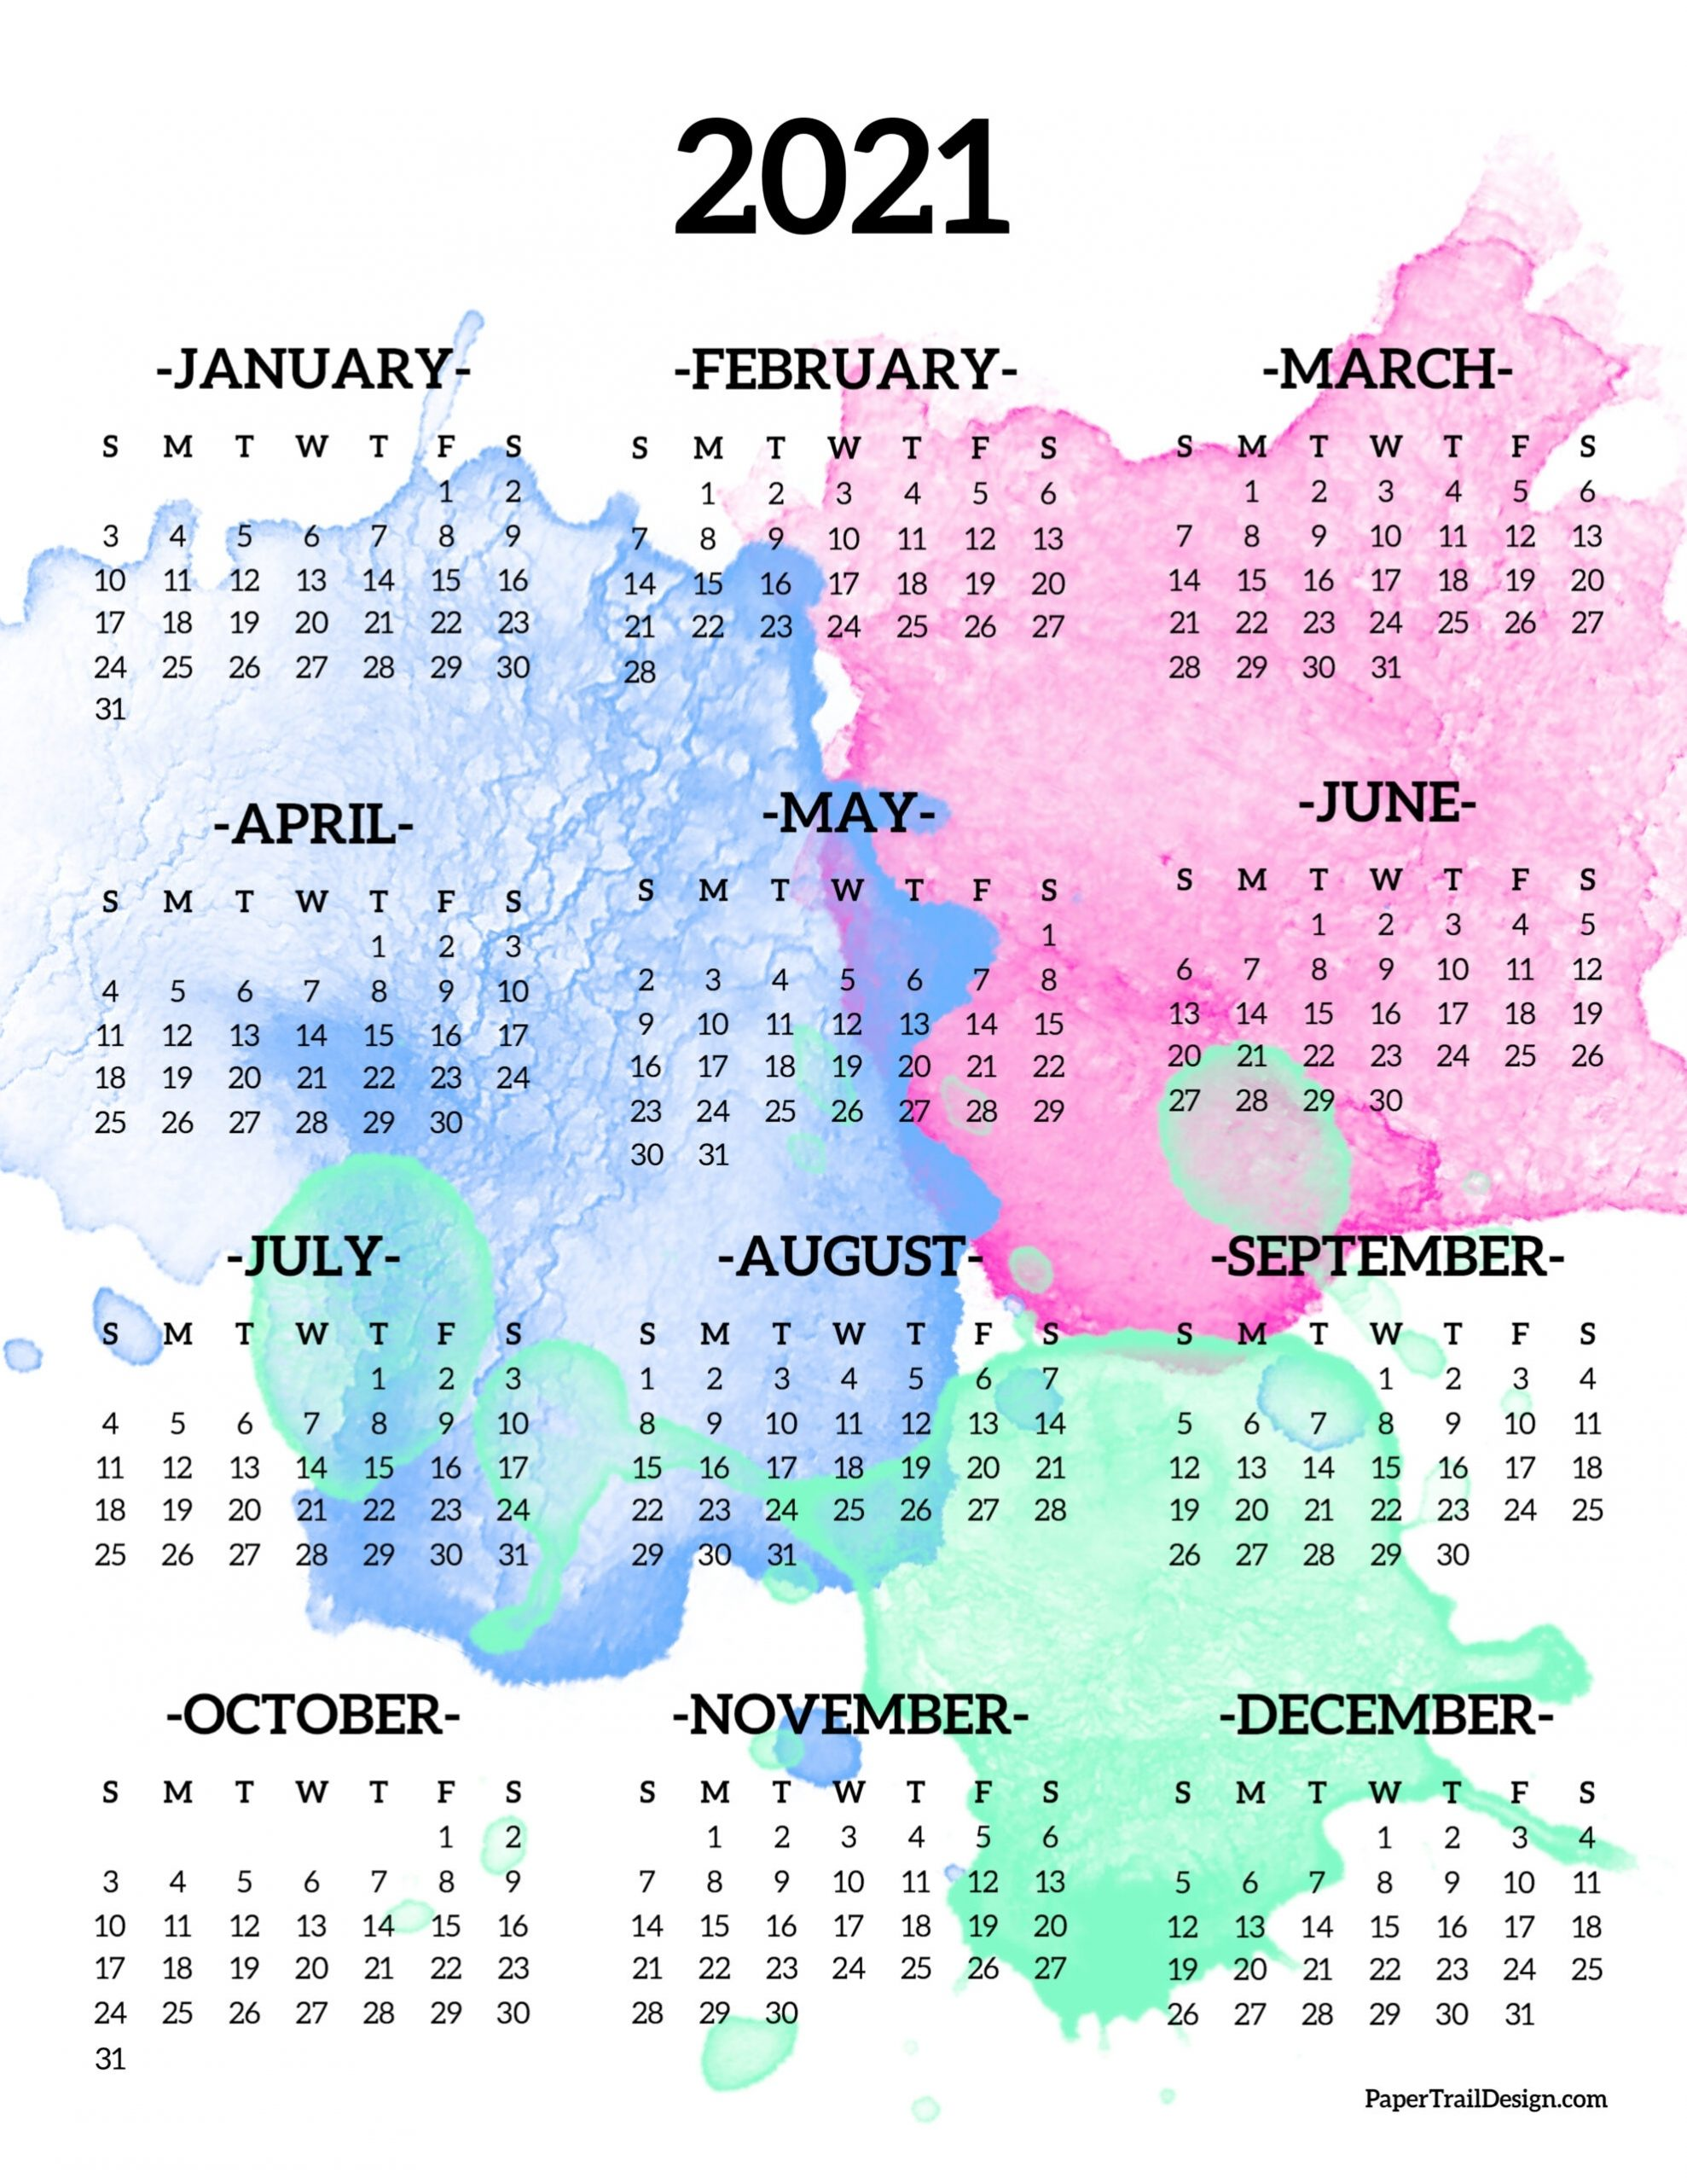 Calendar 2021 Printable One Page   Paper Trail Design